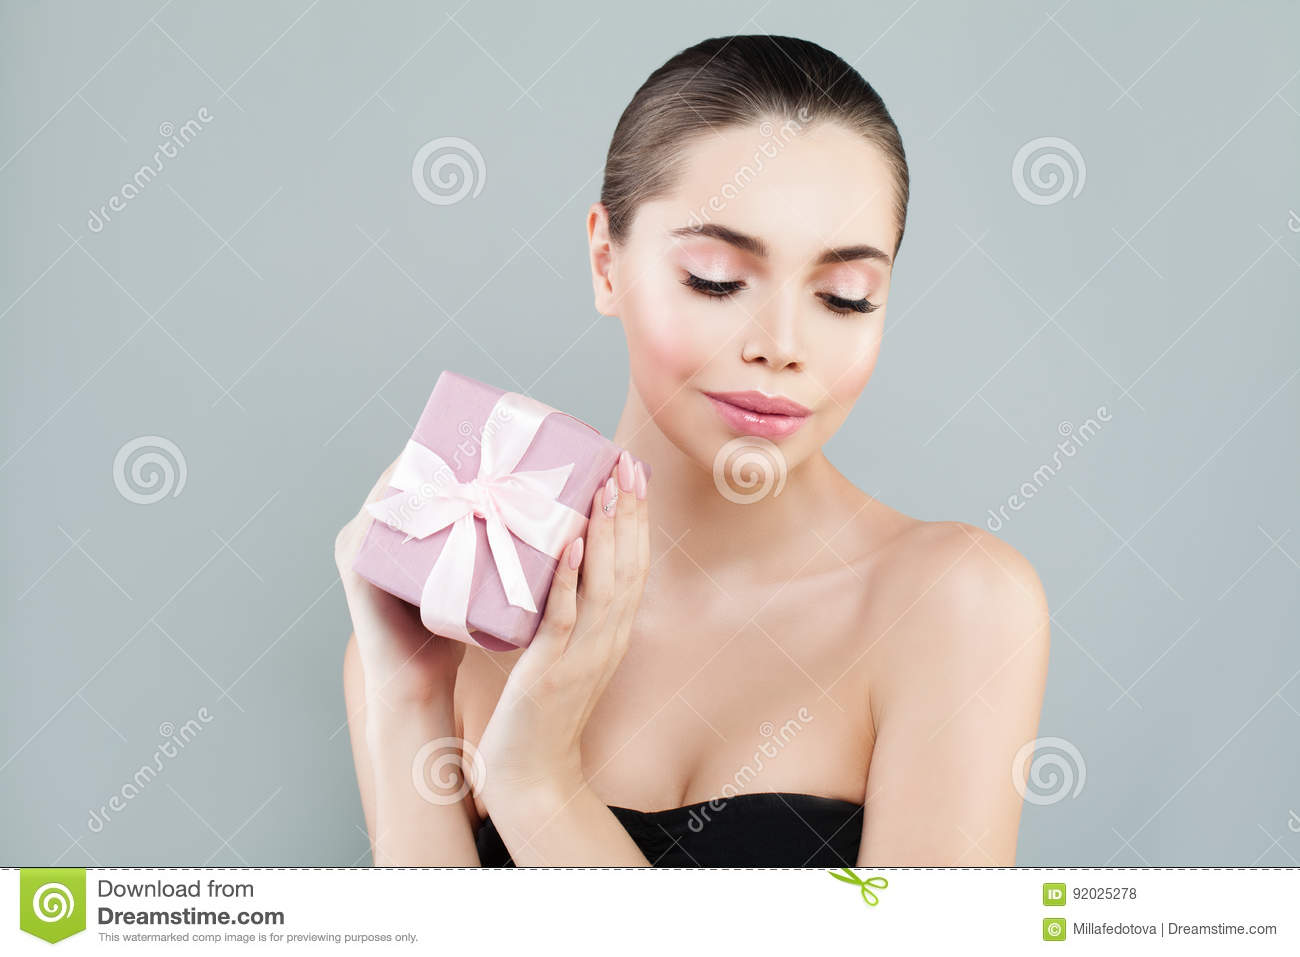 Fashion Beauty Portrait of Stylish Woman with Gift Box